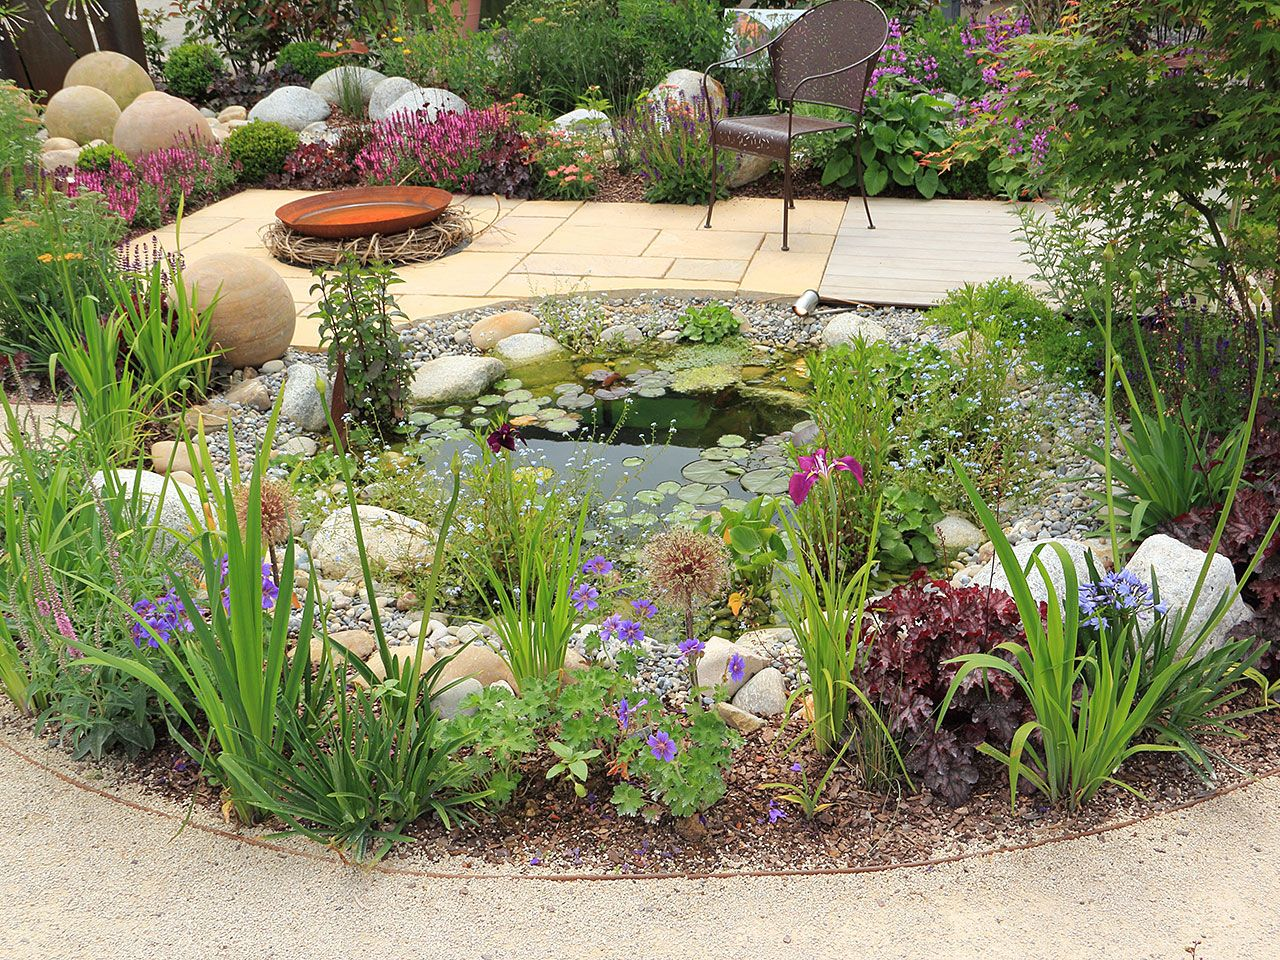 Garden pond with flowers and shrubs garden pond design for Garden pond design